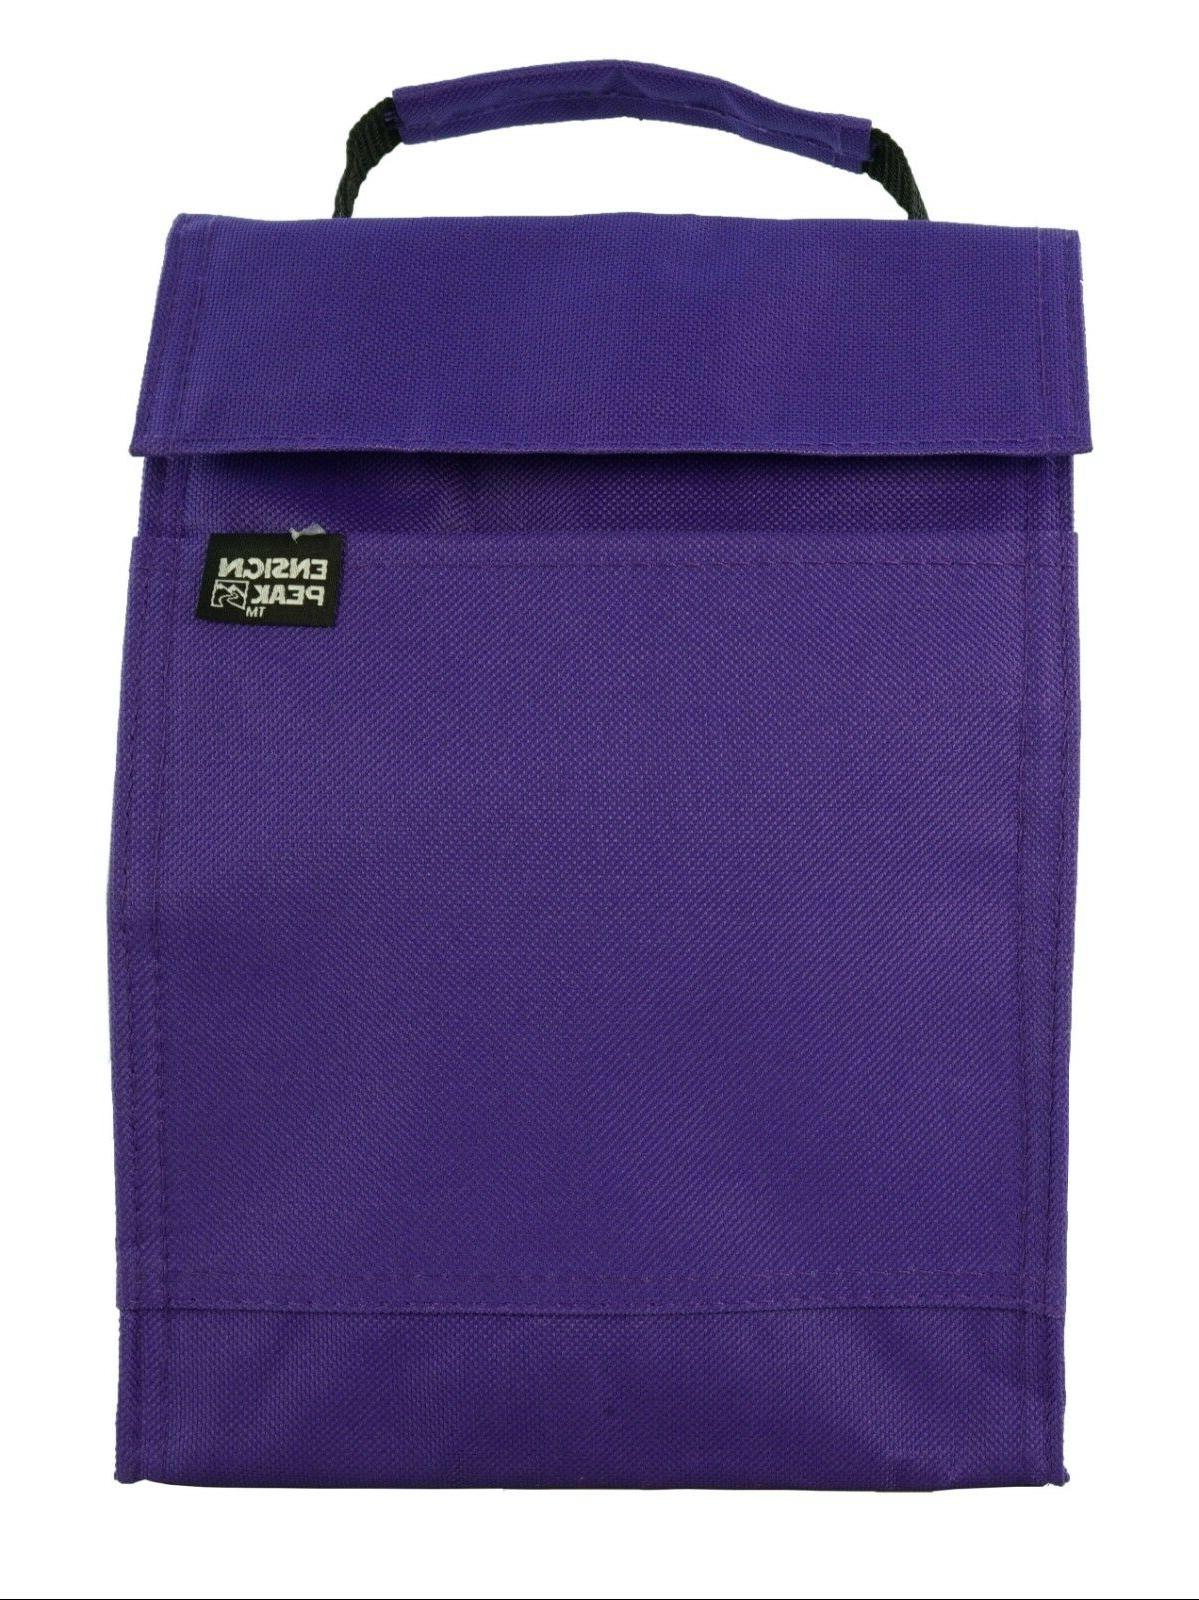 Ensign Lunch Sack / Tote Reusable, Travel, Work